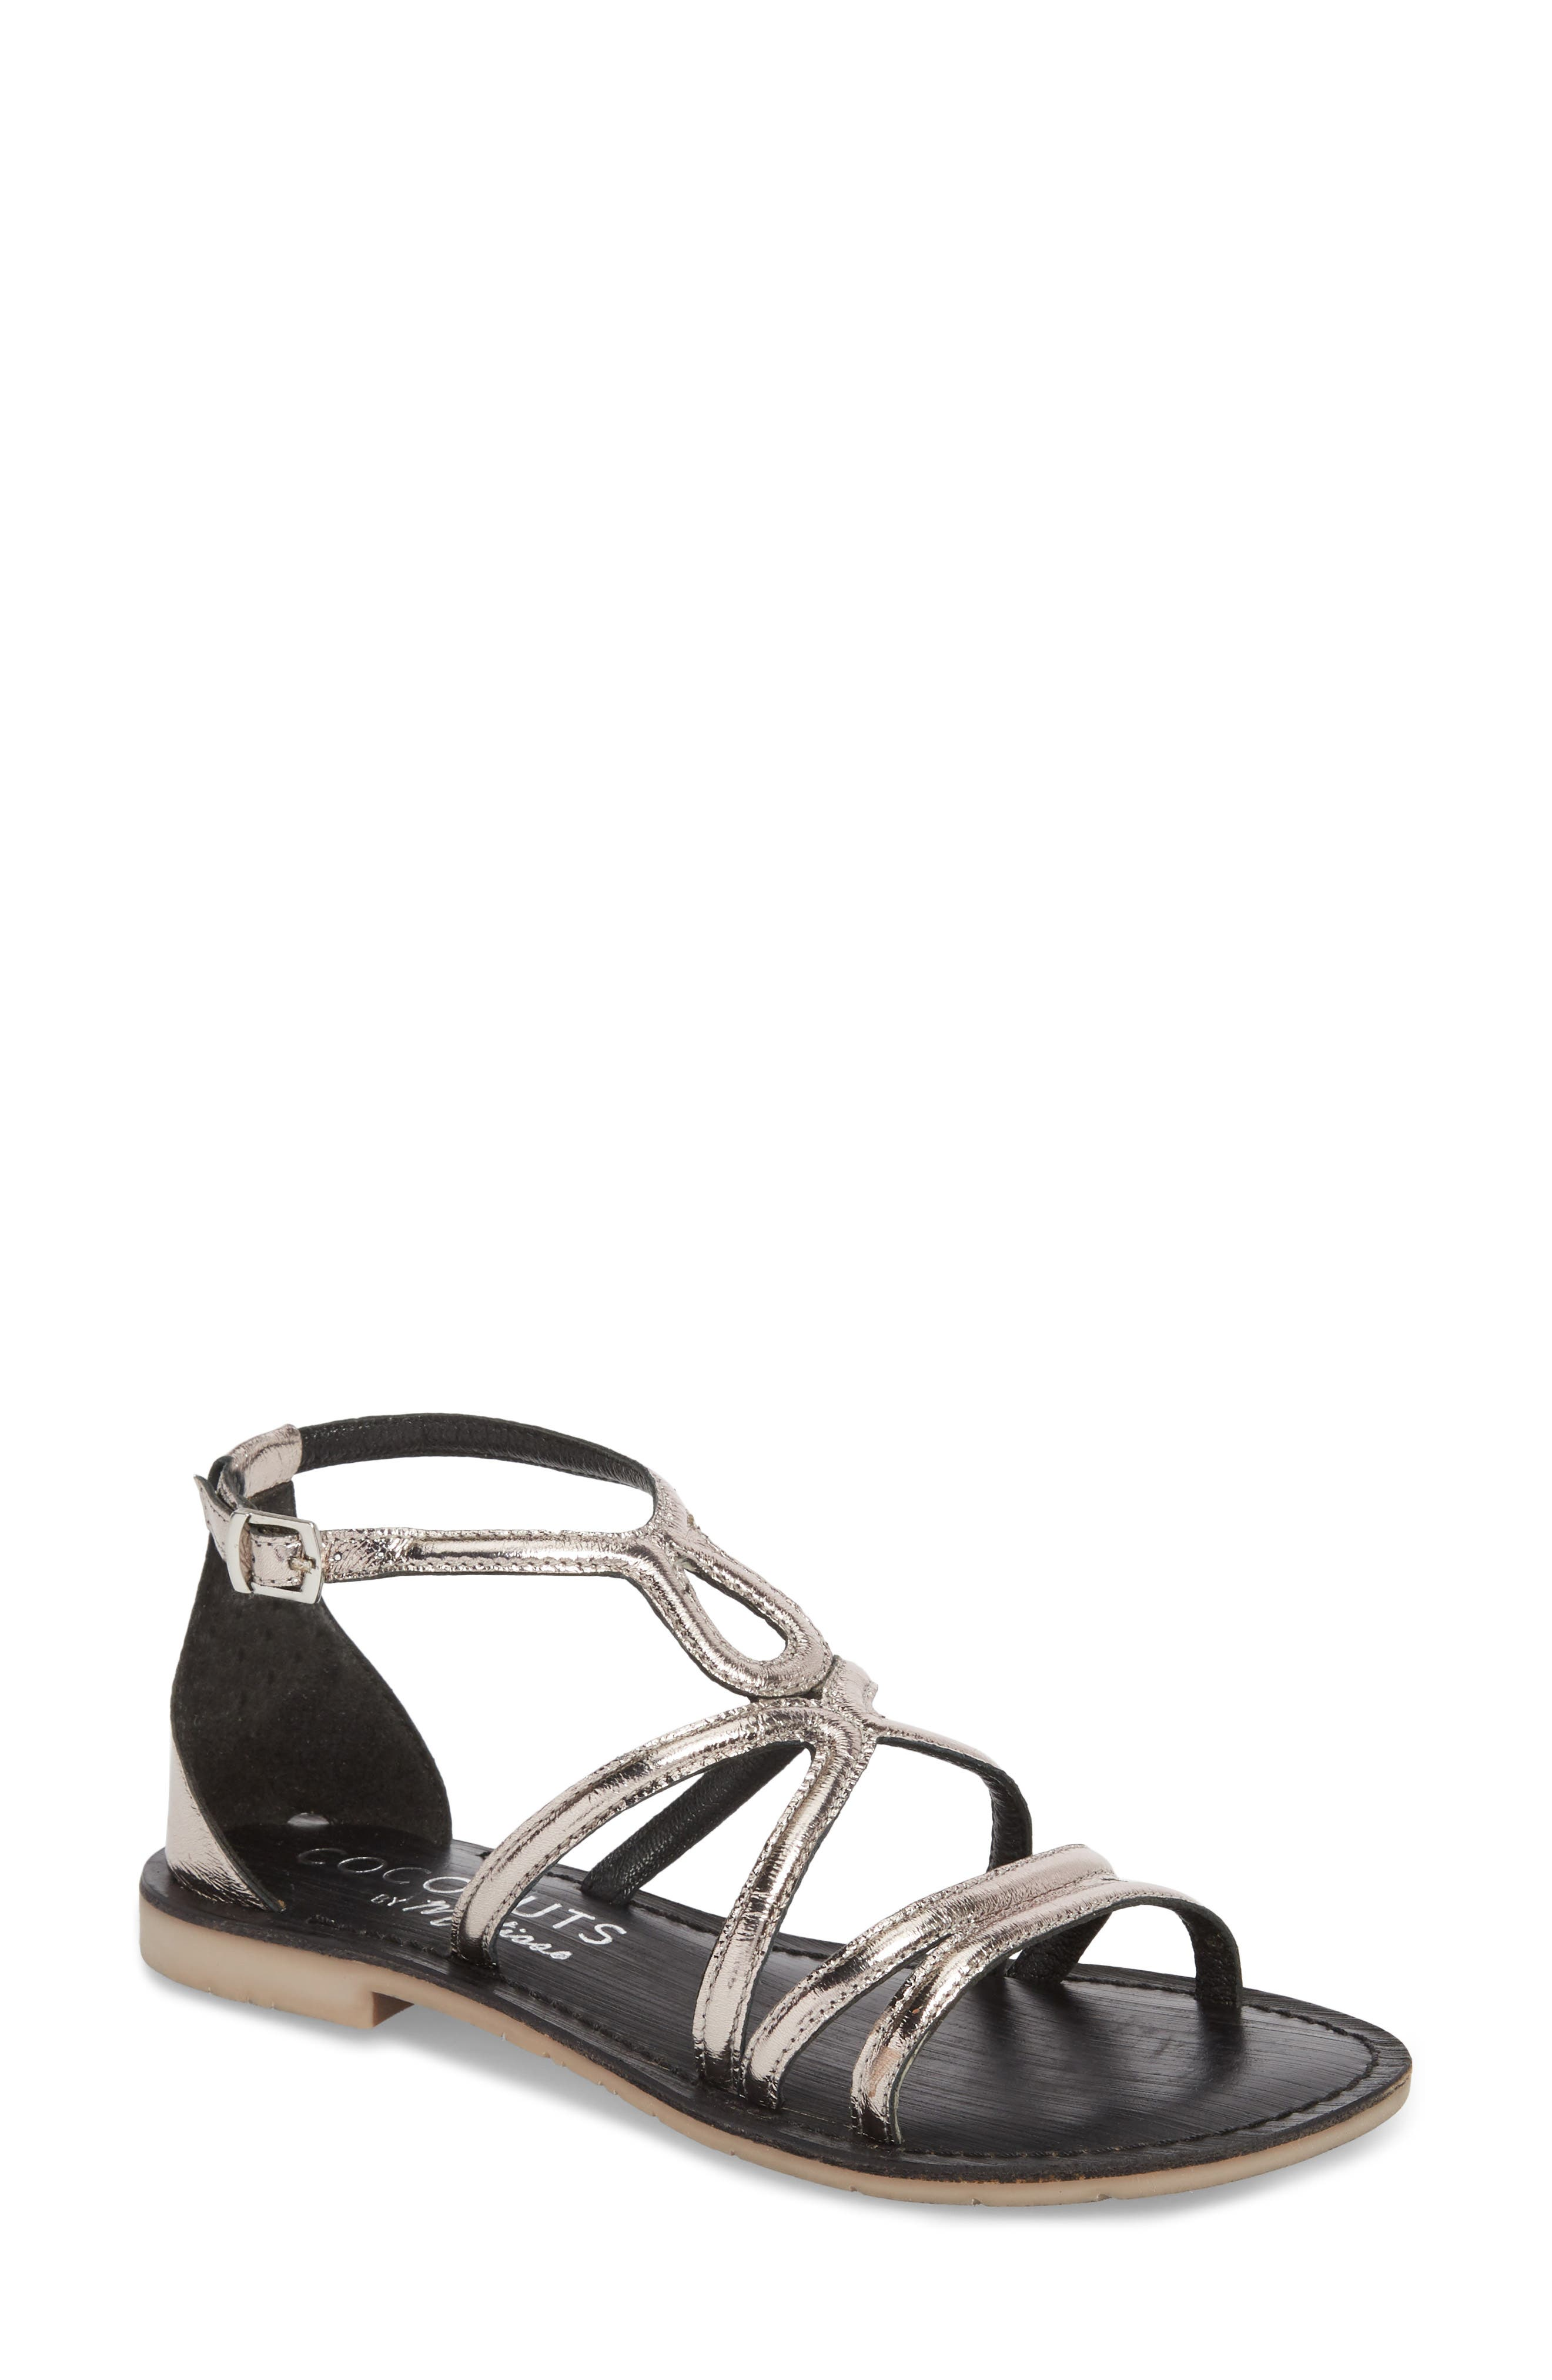 Palm Beach Metallic Sandal,                             Main thumbnail 1, color,                             Pewter Leather